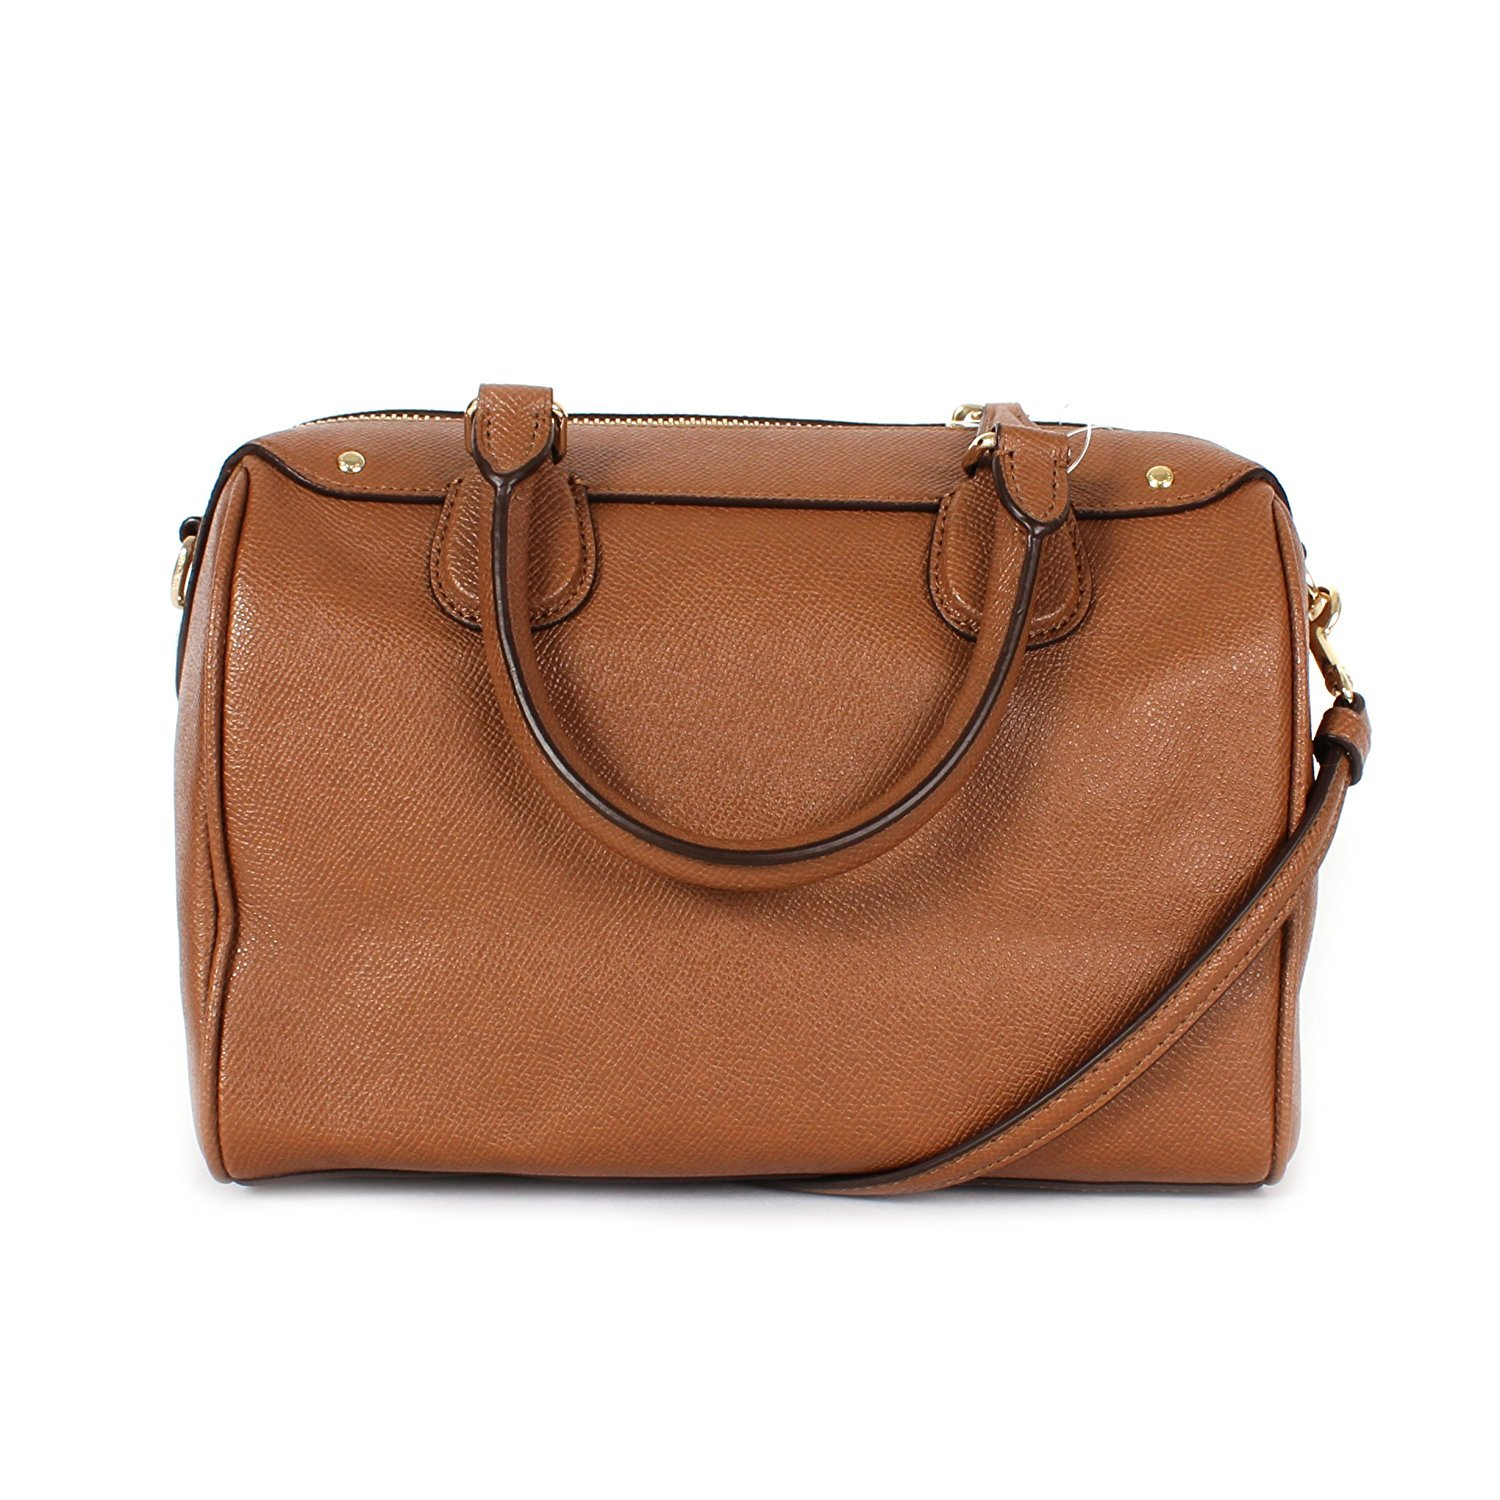 4f7b4717f1d8 MINI BENNETT SATCHEL IN CROSSGRAIN LEATHER  Handbags  Amazon.com